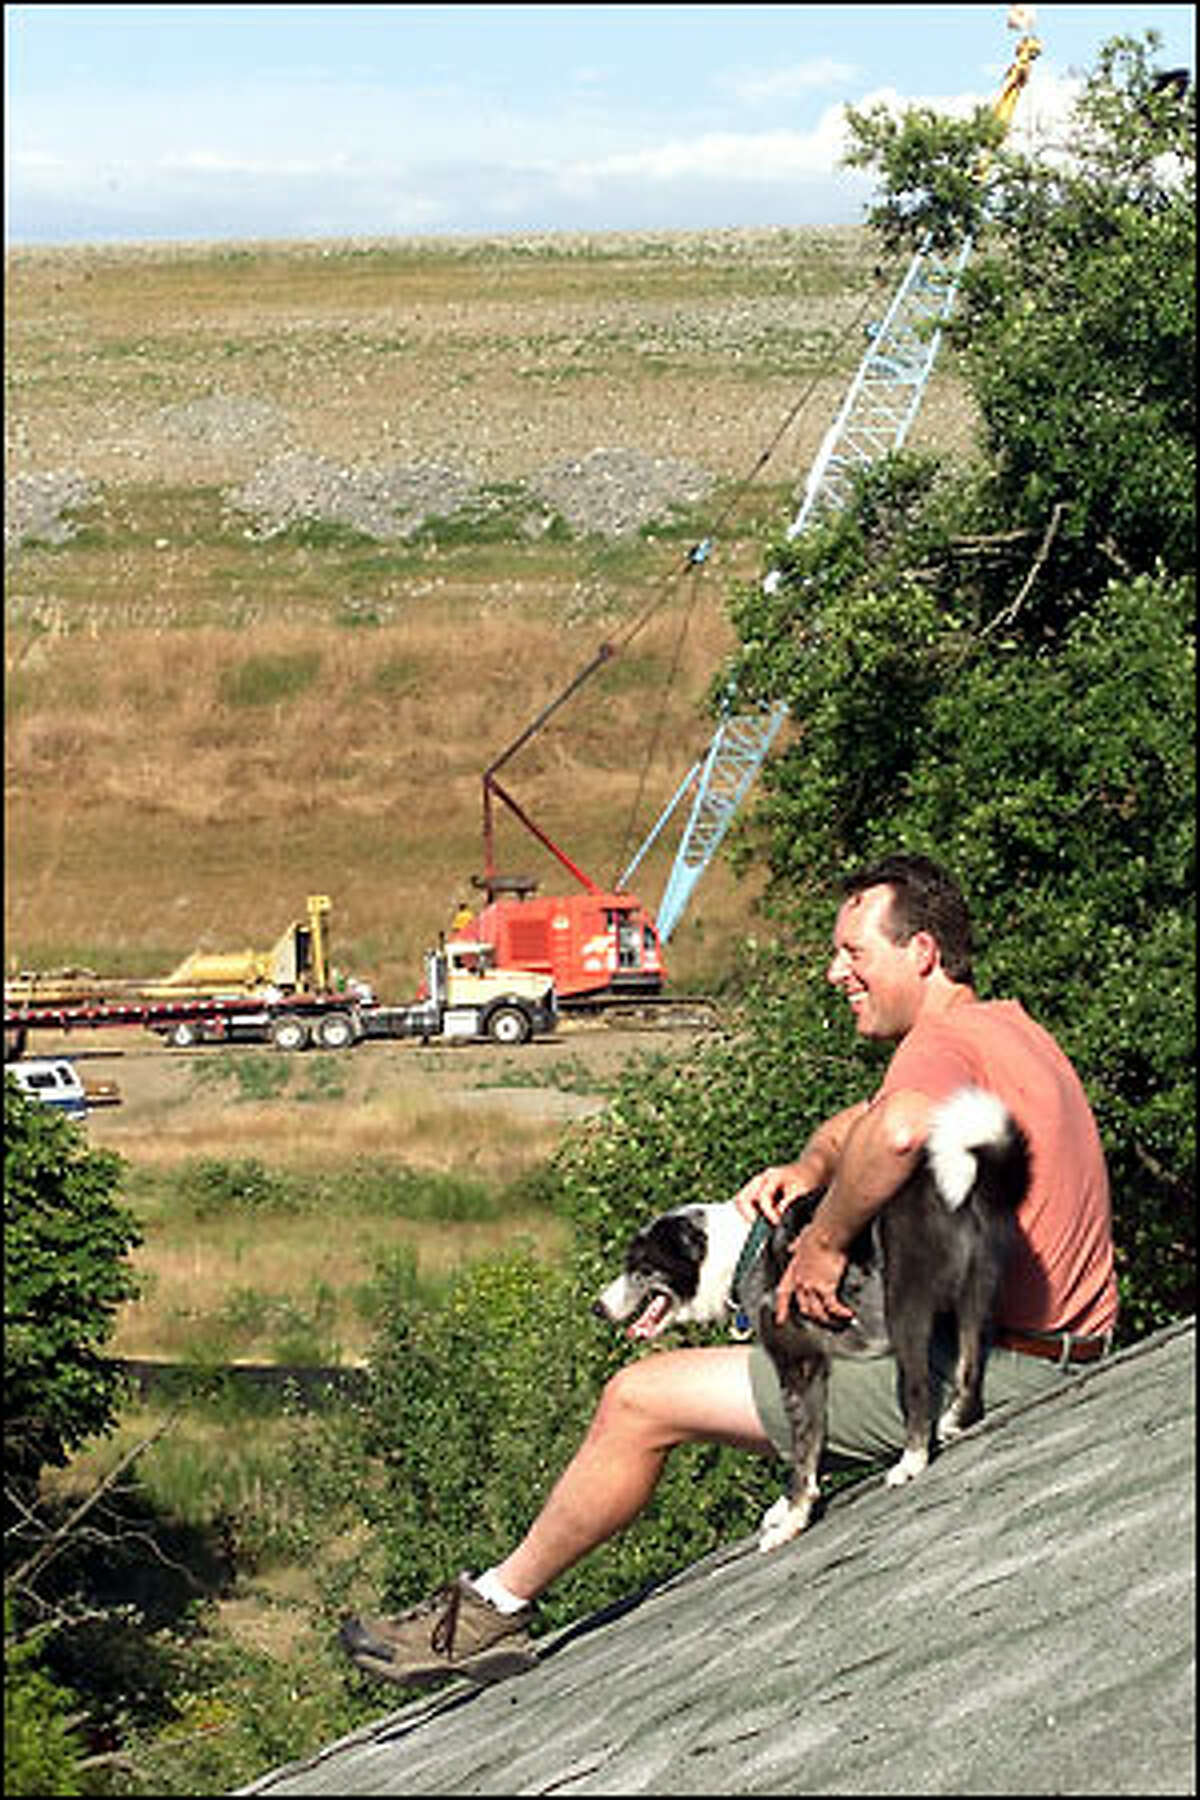 Work on Sea-Tac Airport's third runway goes on near the home Lyle Wammer shares with his dog Oi off Des Moines Memorial Drive. So far, 3 million cubic yards of fill have been trucked in -- and the Port of Seattle still has 13.5 million cubic yards to go.